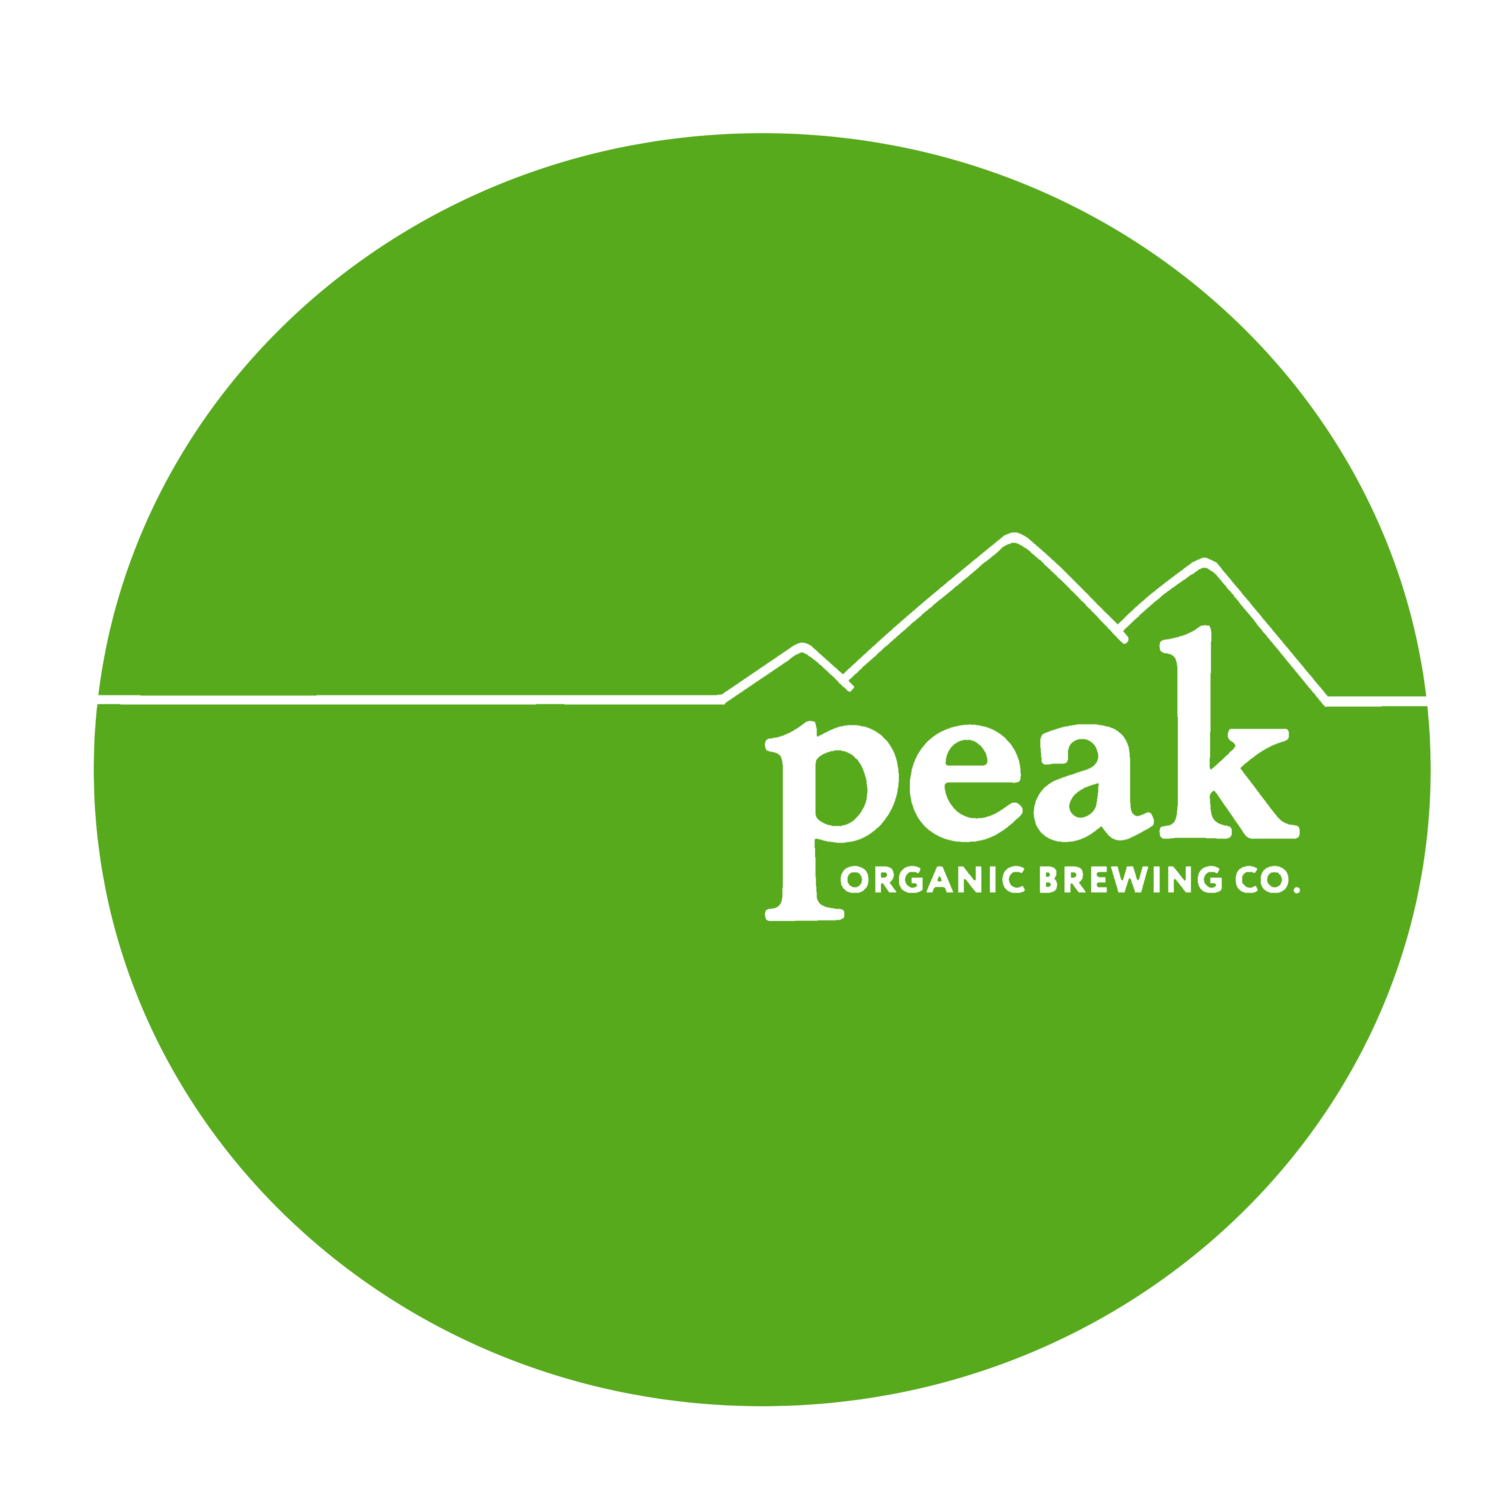 Peak Organic Brewing Co.